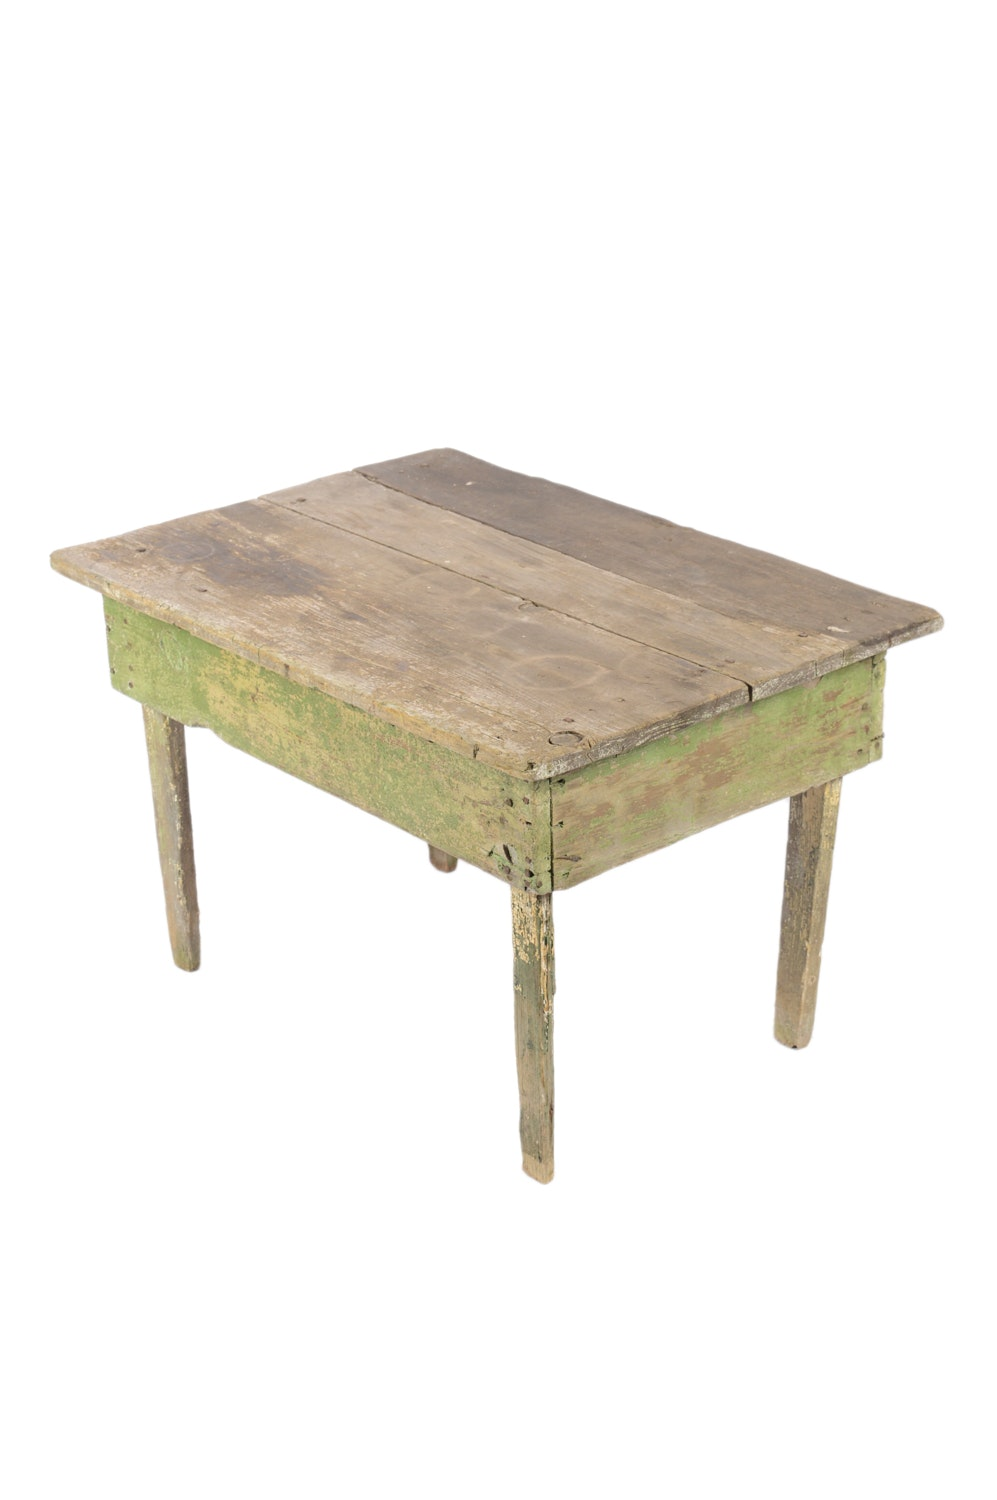 Rustic Painted Wood Side Table, 20th Century